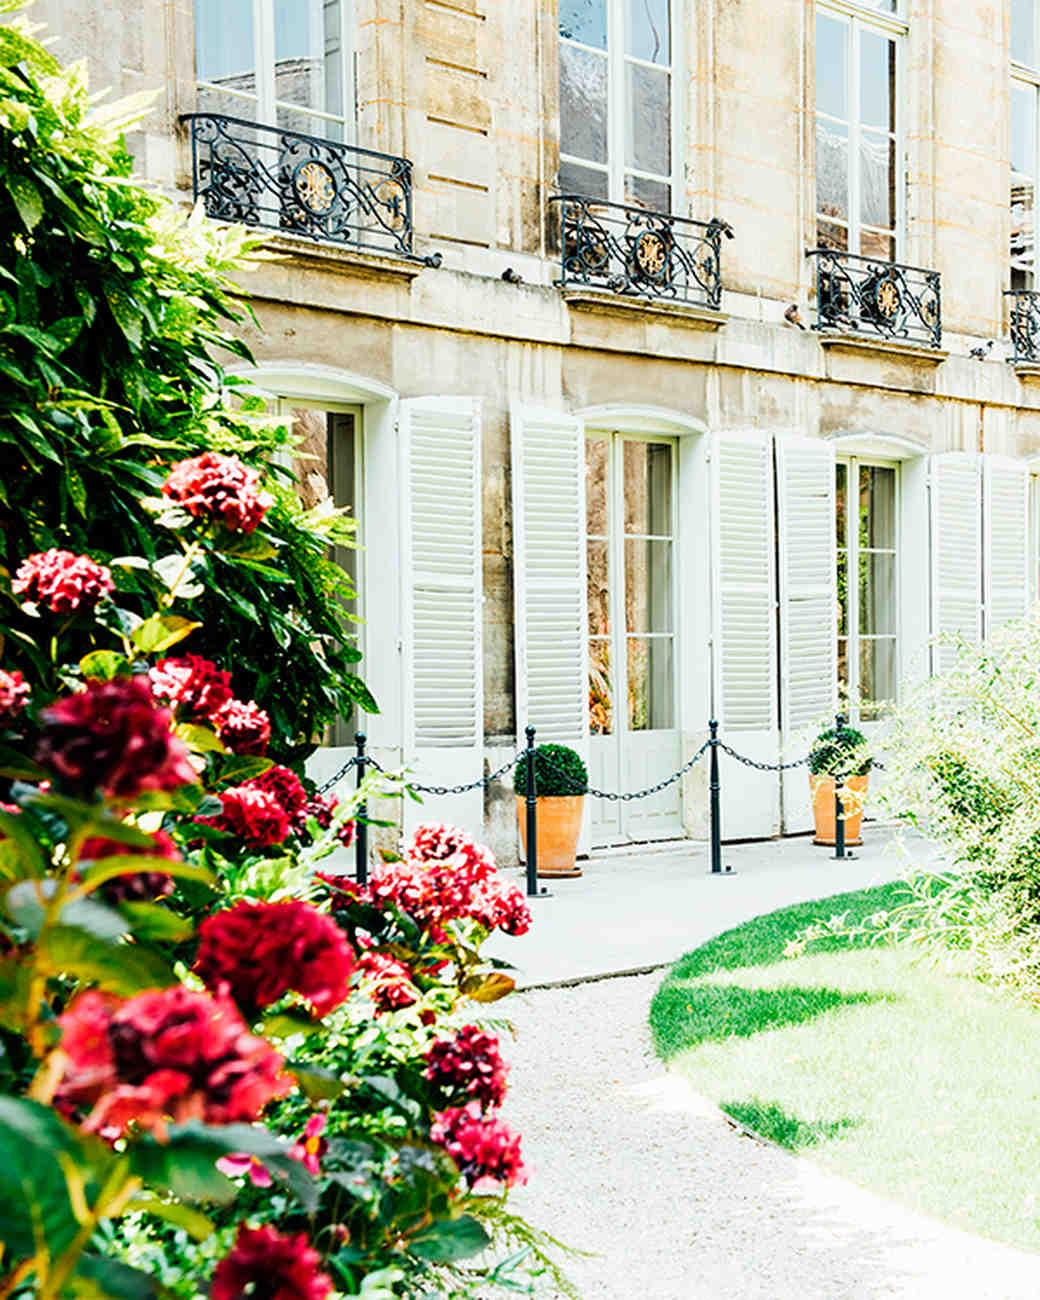 katie-mitchell-photography-where-to-propose-in-paris-jardins-archives-nationales-0815.jpg